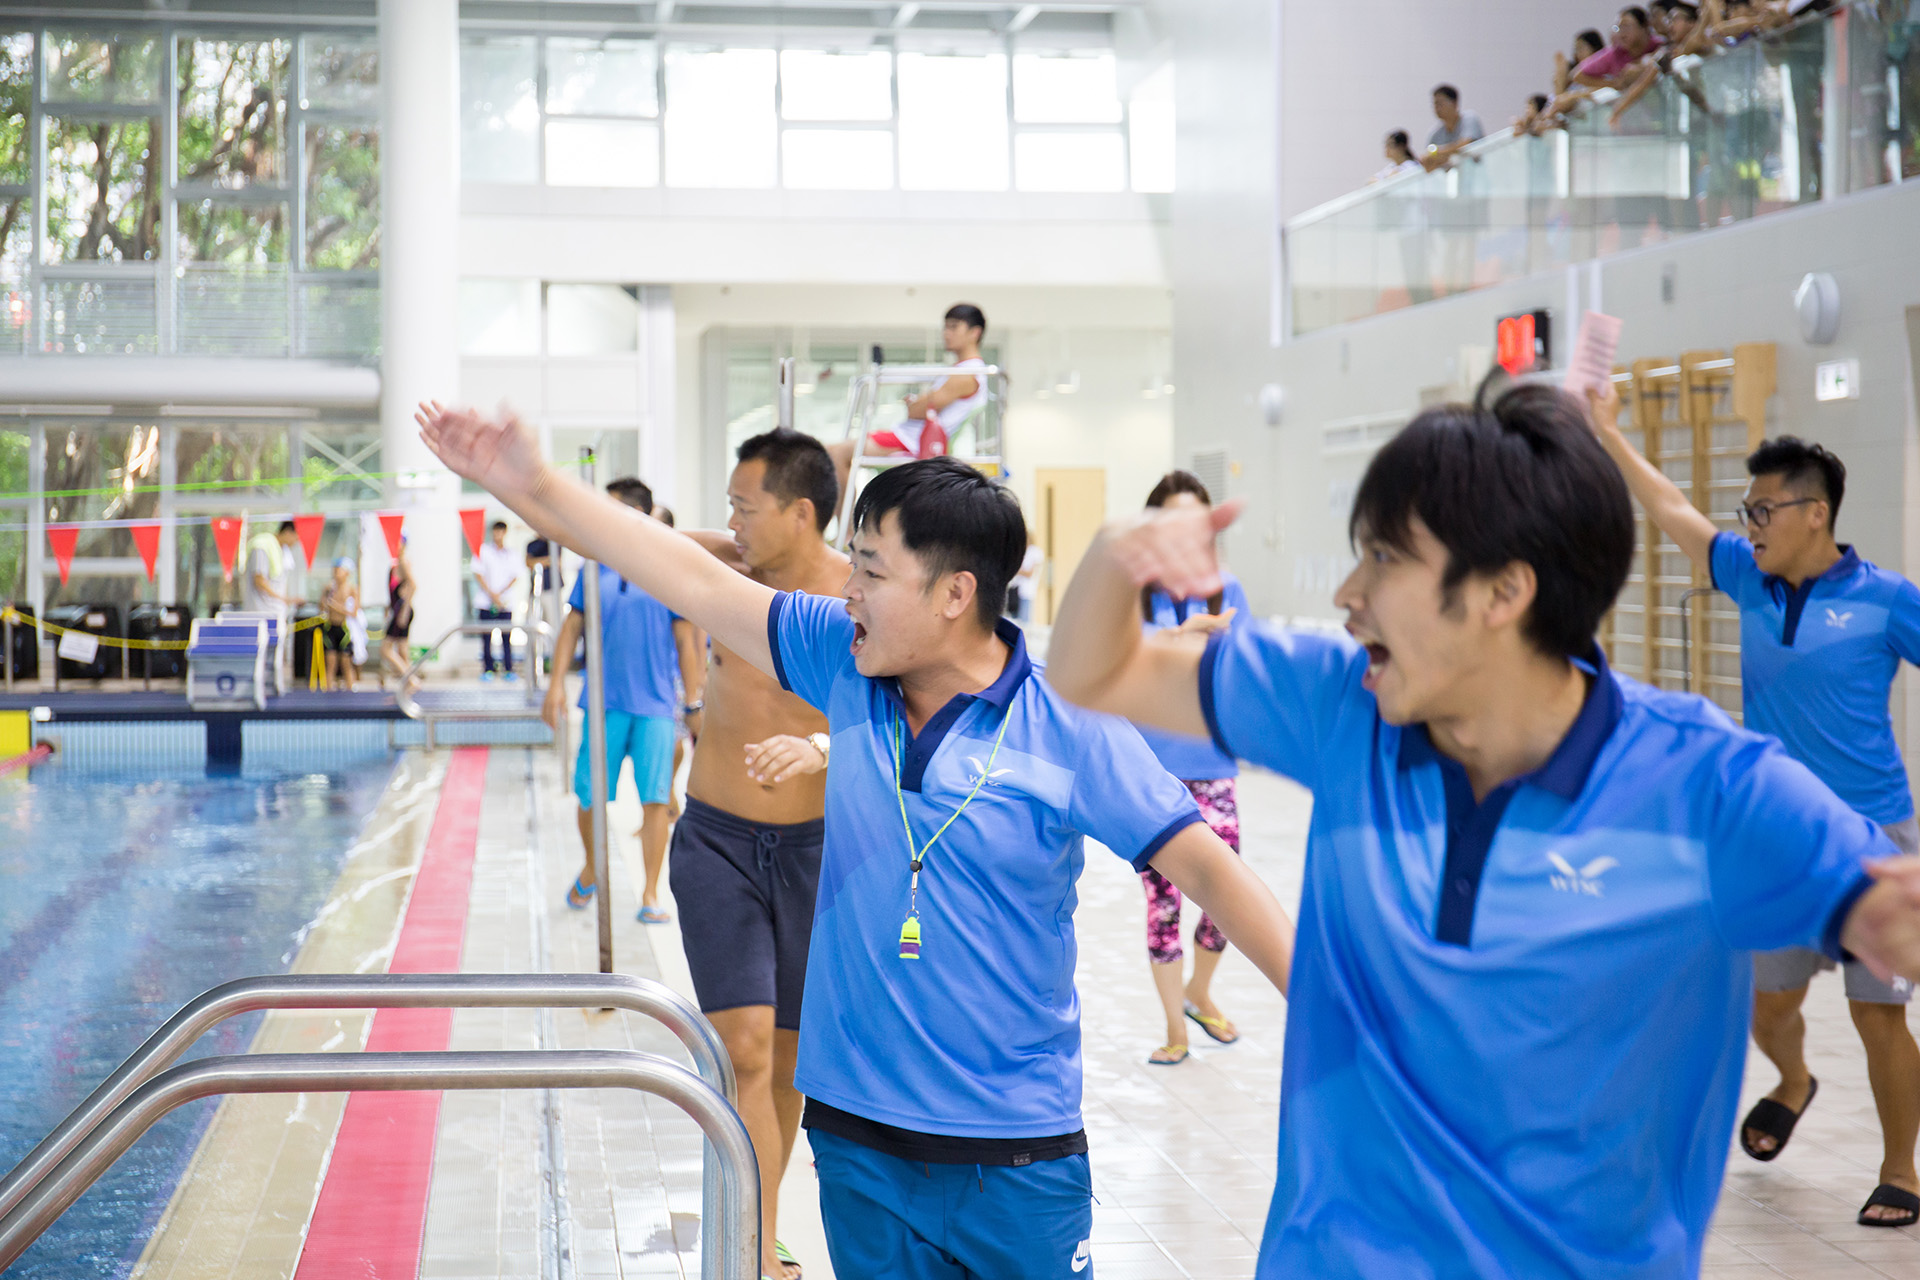 Win Tin Swimming Club - 28th Annual Swimming Gala 3